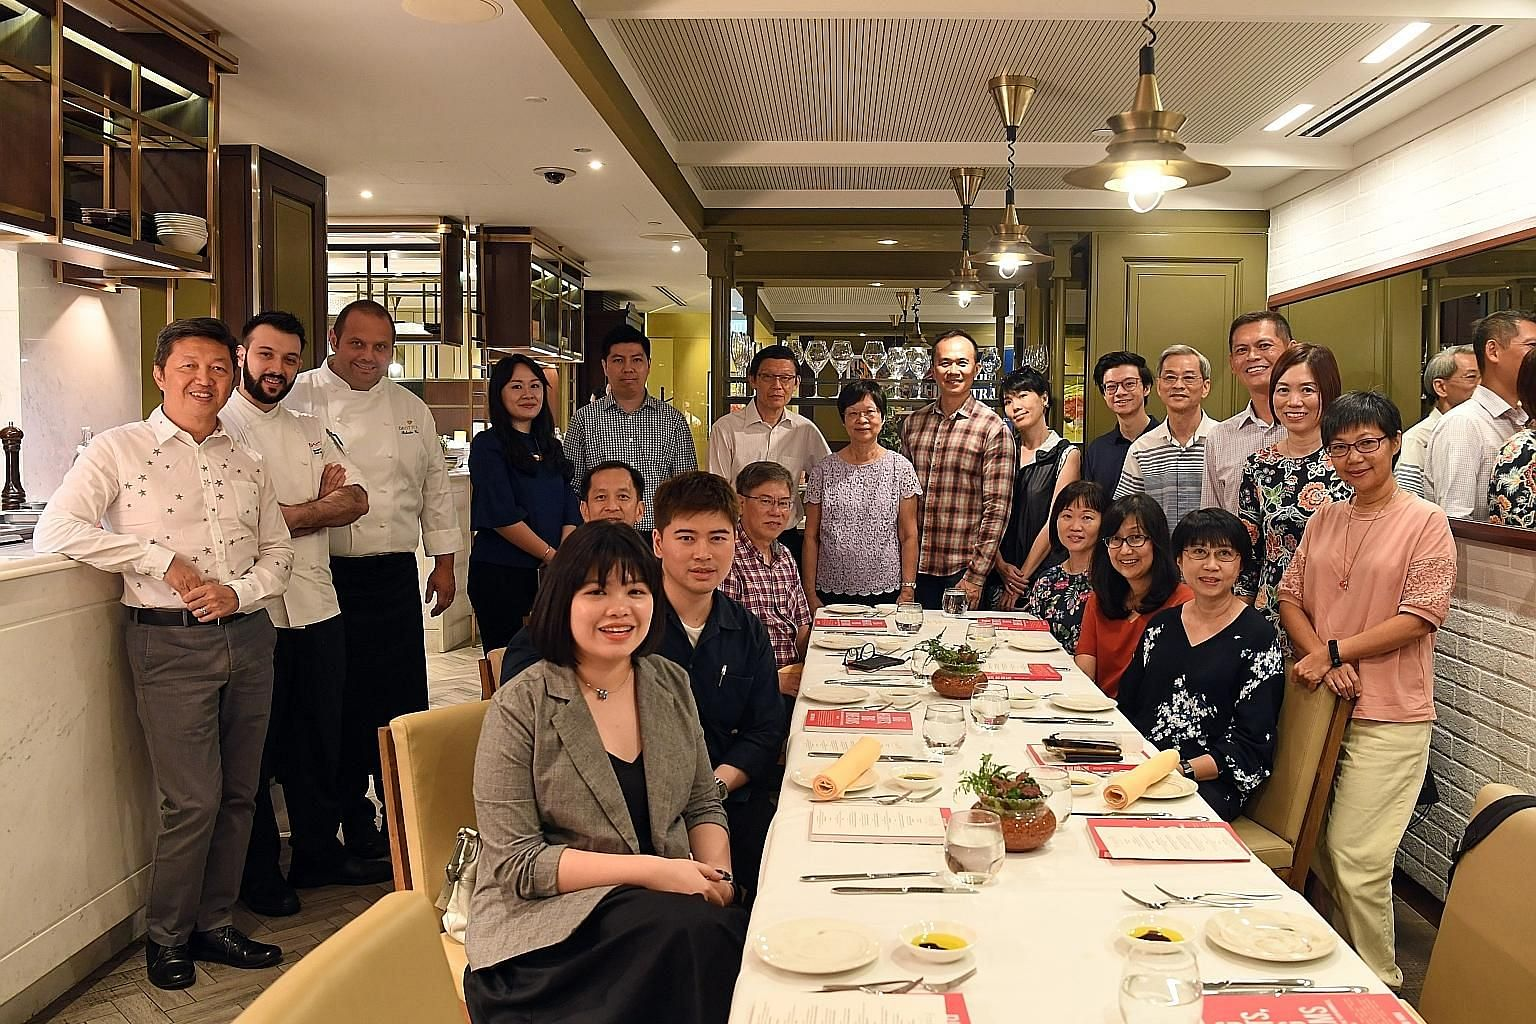 Twenty people were treated to dinner at Fratelli Trattoria in Resorts World Sentosa on Wednesday, which was hosted by ST senior food correspondent Wong Ah Yoke (far left).